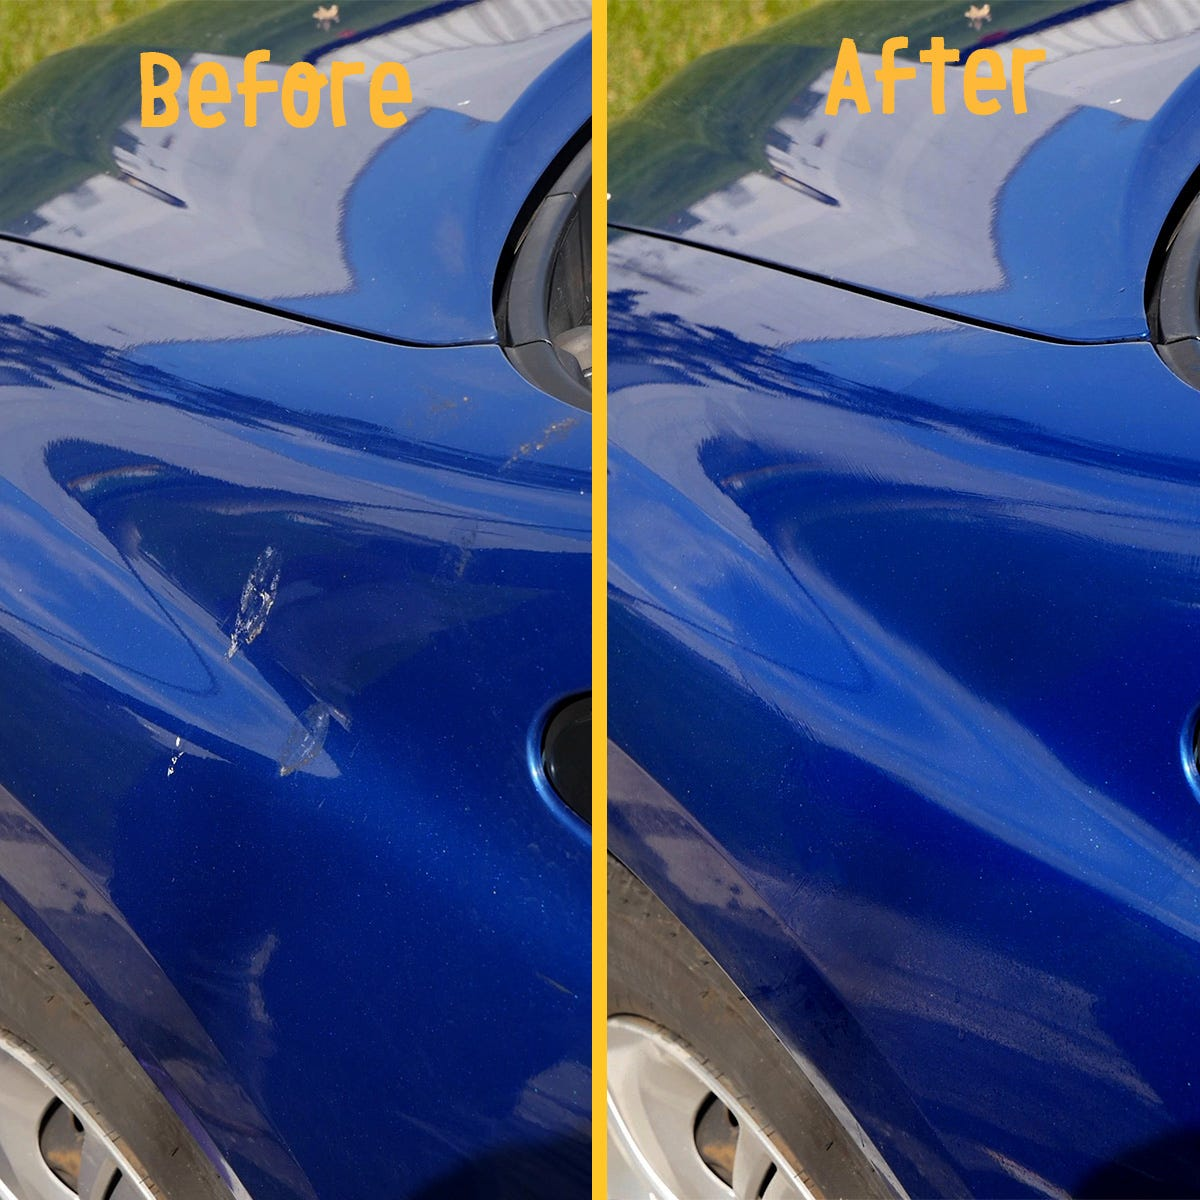 Bird droppings cleaned off car